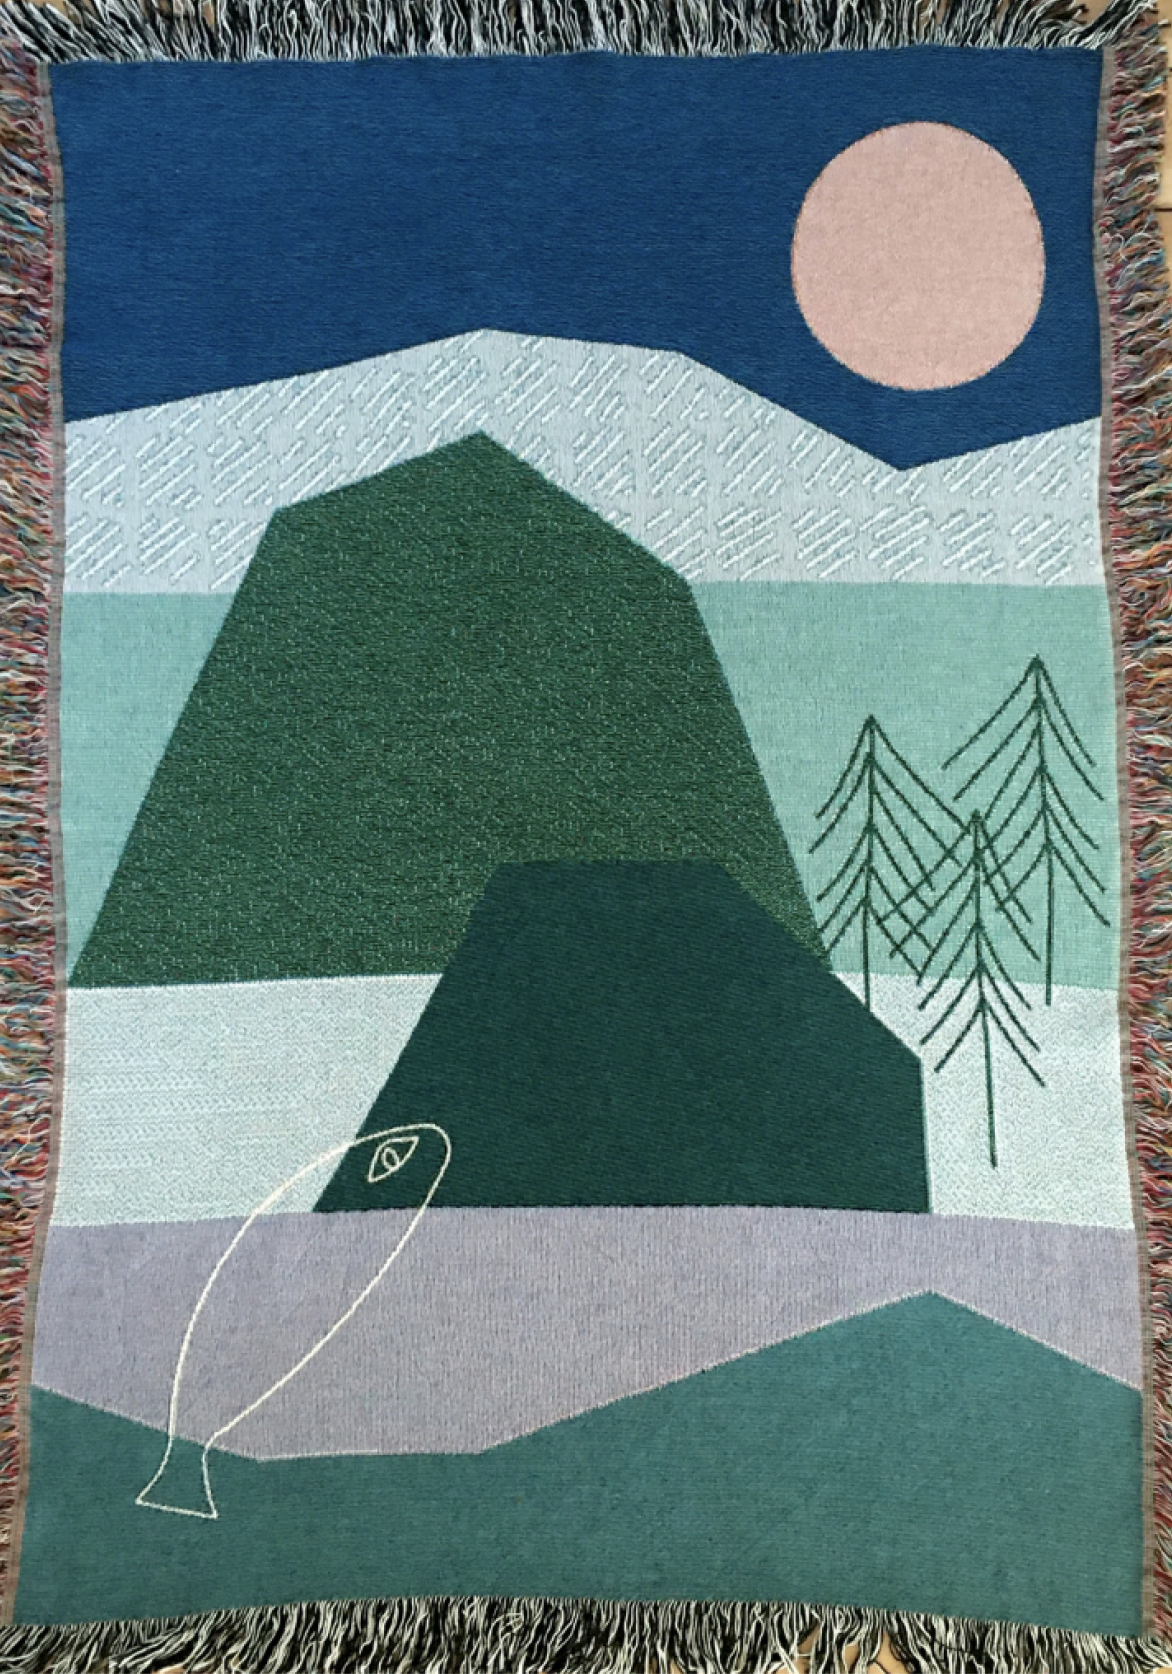 Woven Plaid with drawing of landscape, mountains, trees, fish and sky